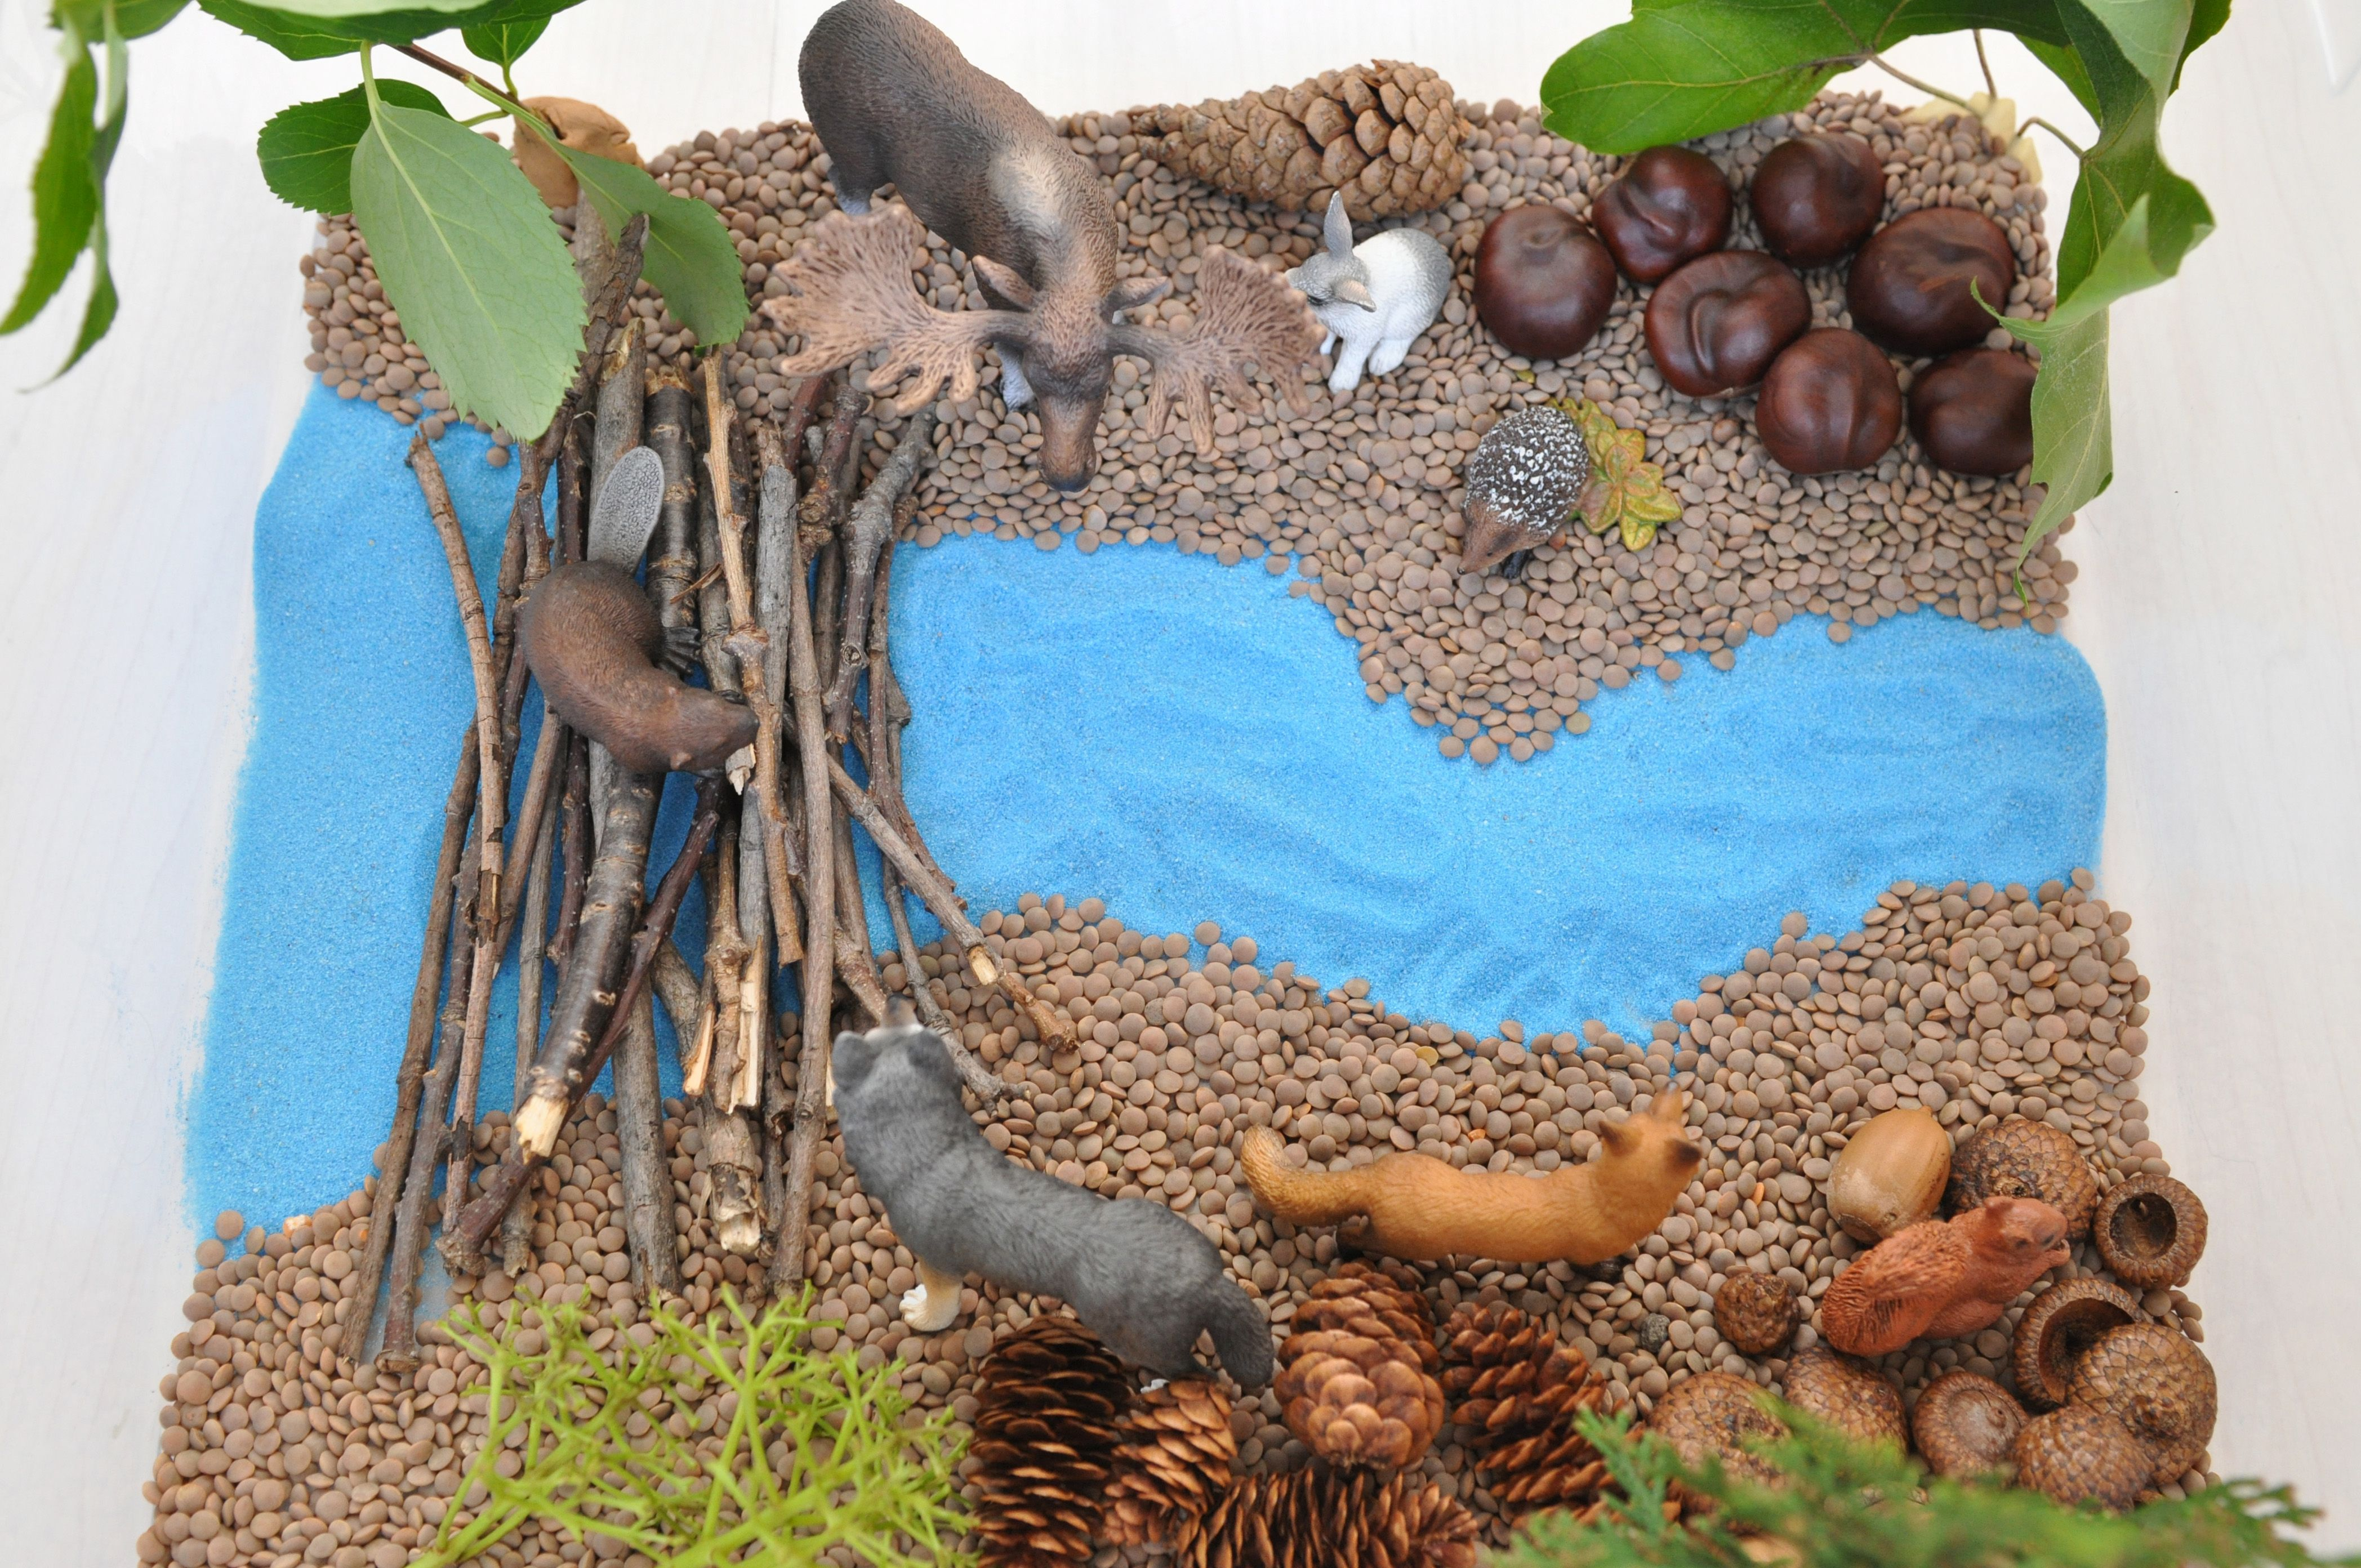 make a beaver dam out of sticks and set up a forest with animals around it sensory bin ingredients lentils blue sand sticks chestnuts acorn caps  [ 4192 x 2784 Pixel ]